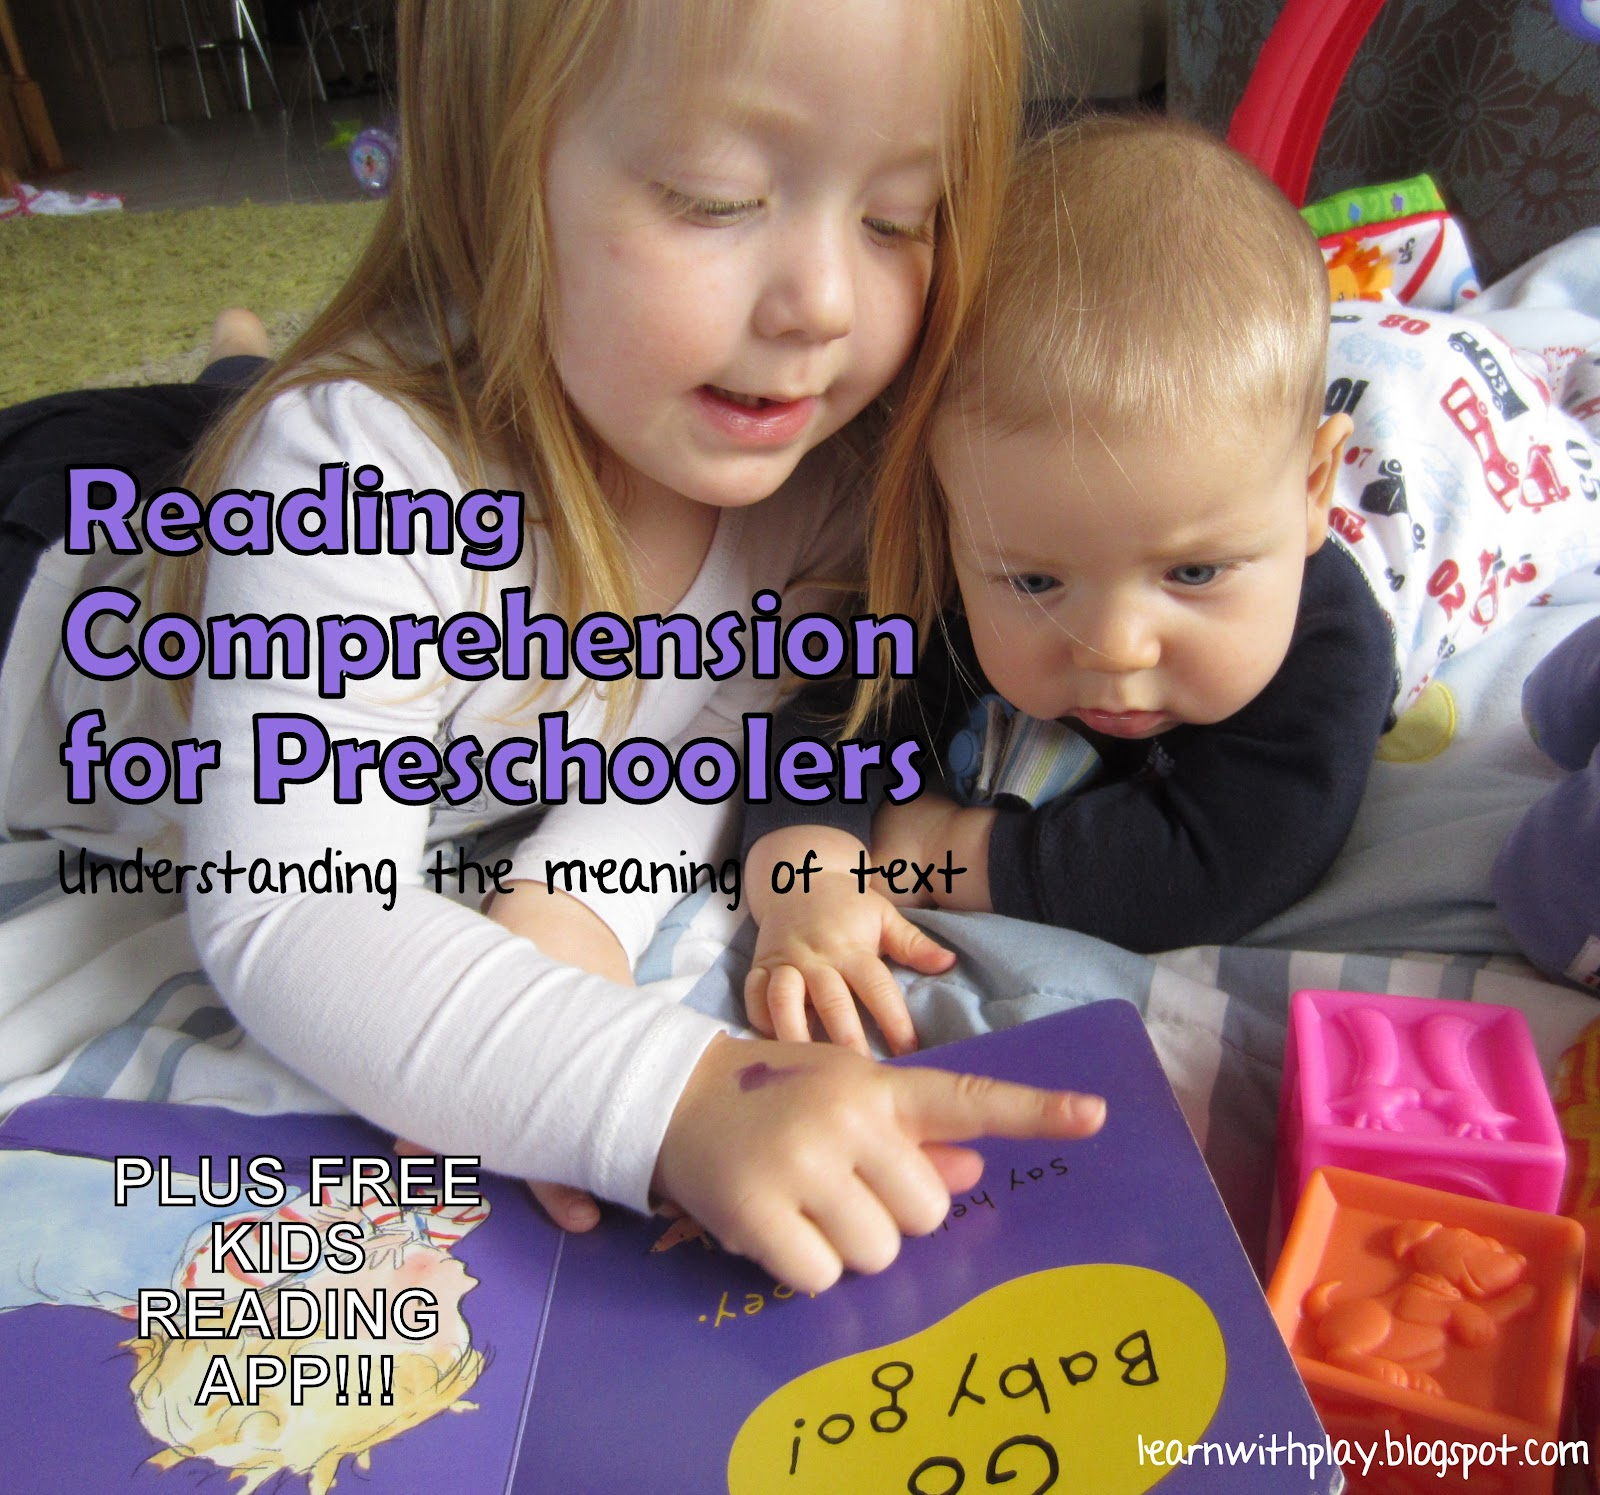 Learn With Play At Home Reading Comprehension For Preschoolers 5 Ways To Help Your Child Plus